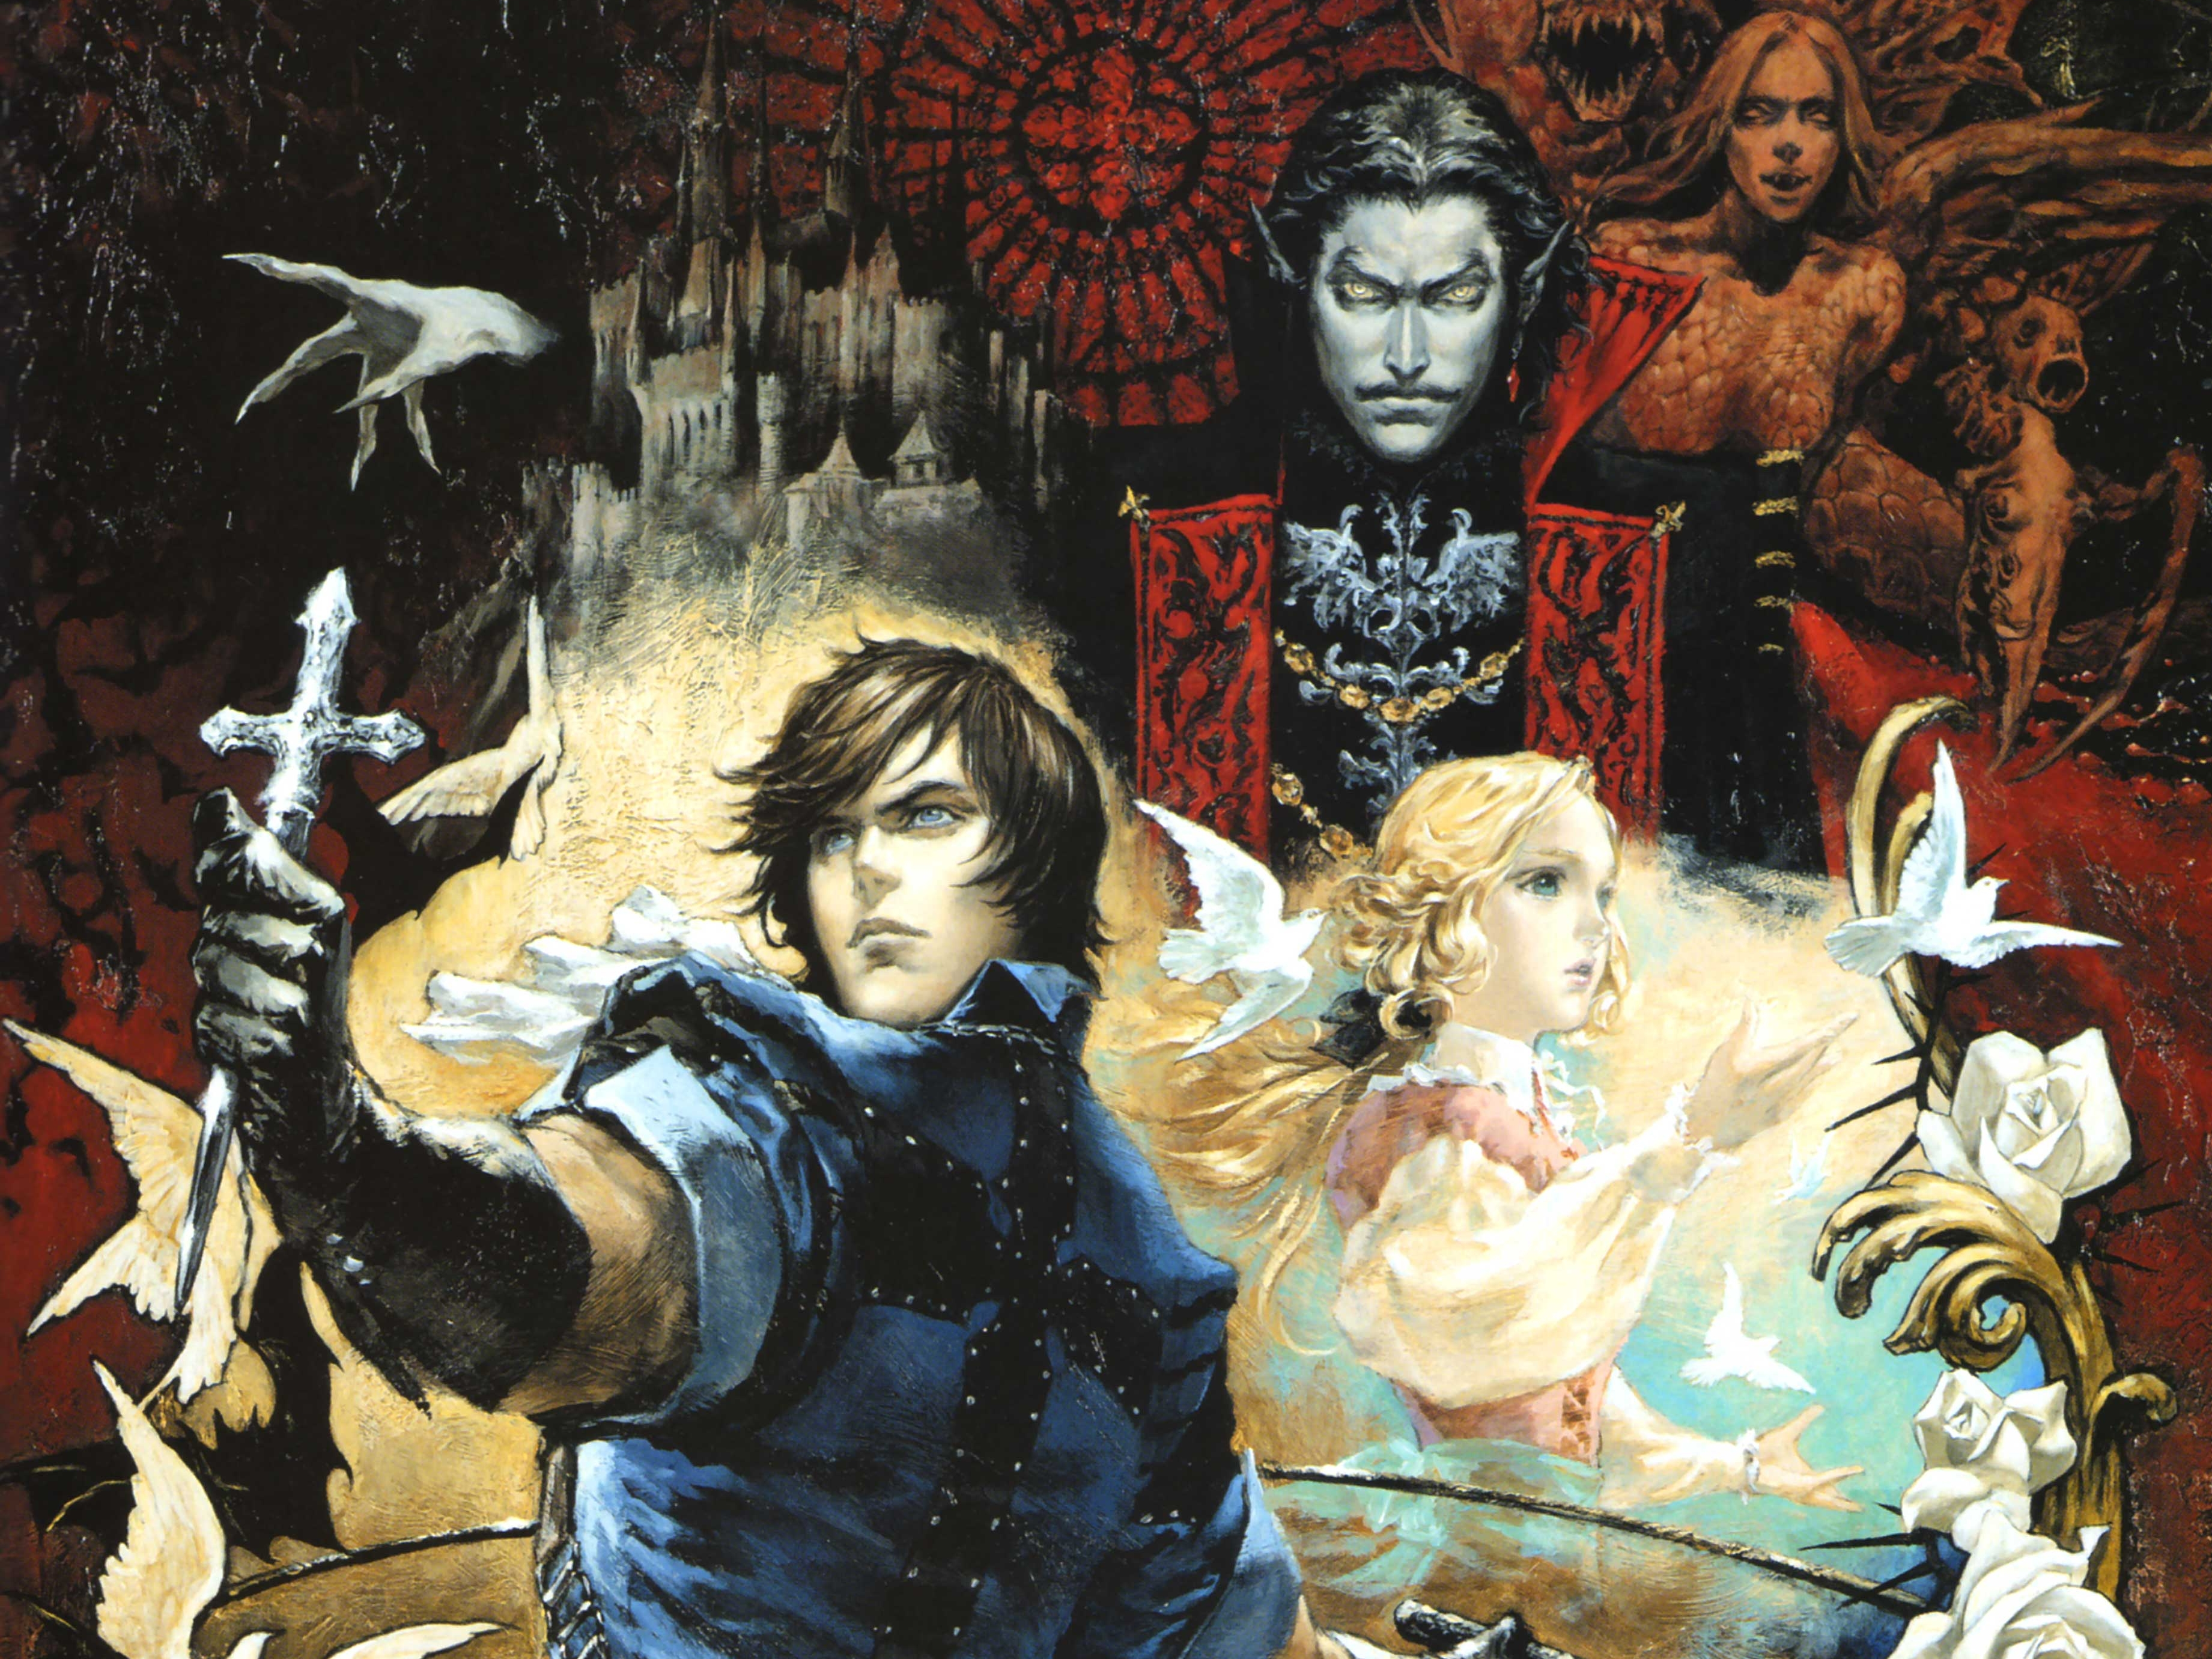 Castlevania The Dracula X Chronicles Full HD Wallpaper And